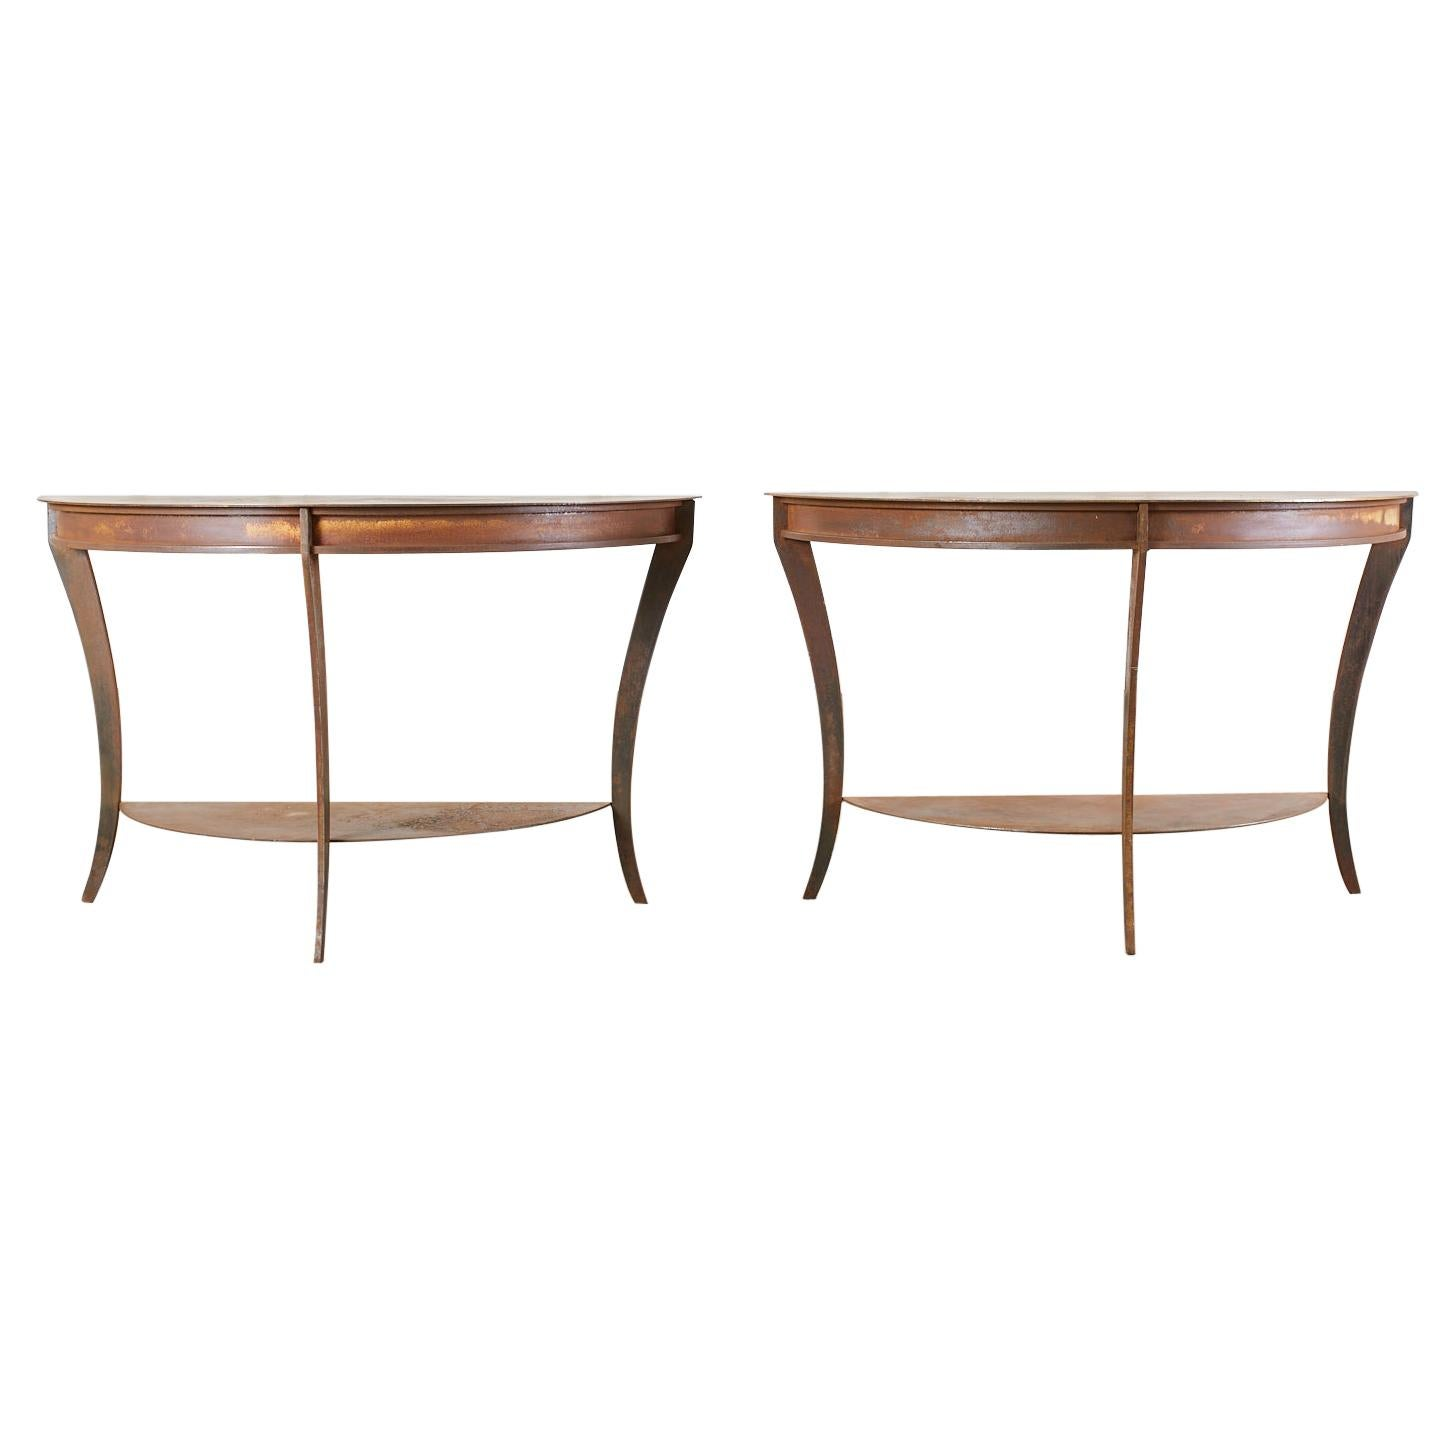 Pair of Patinated Iron Demilune Console Tables